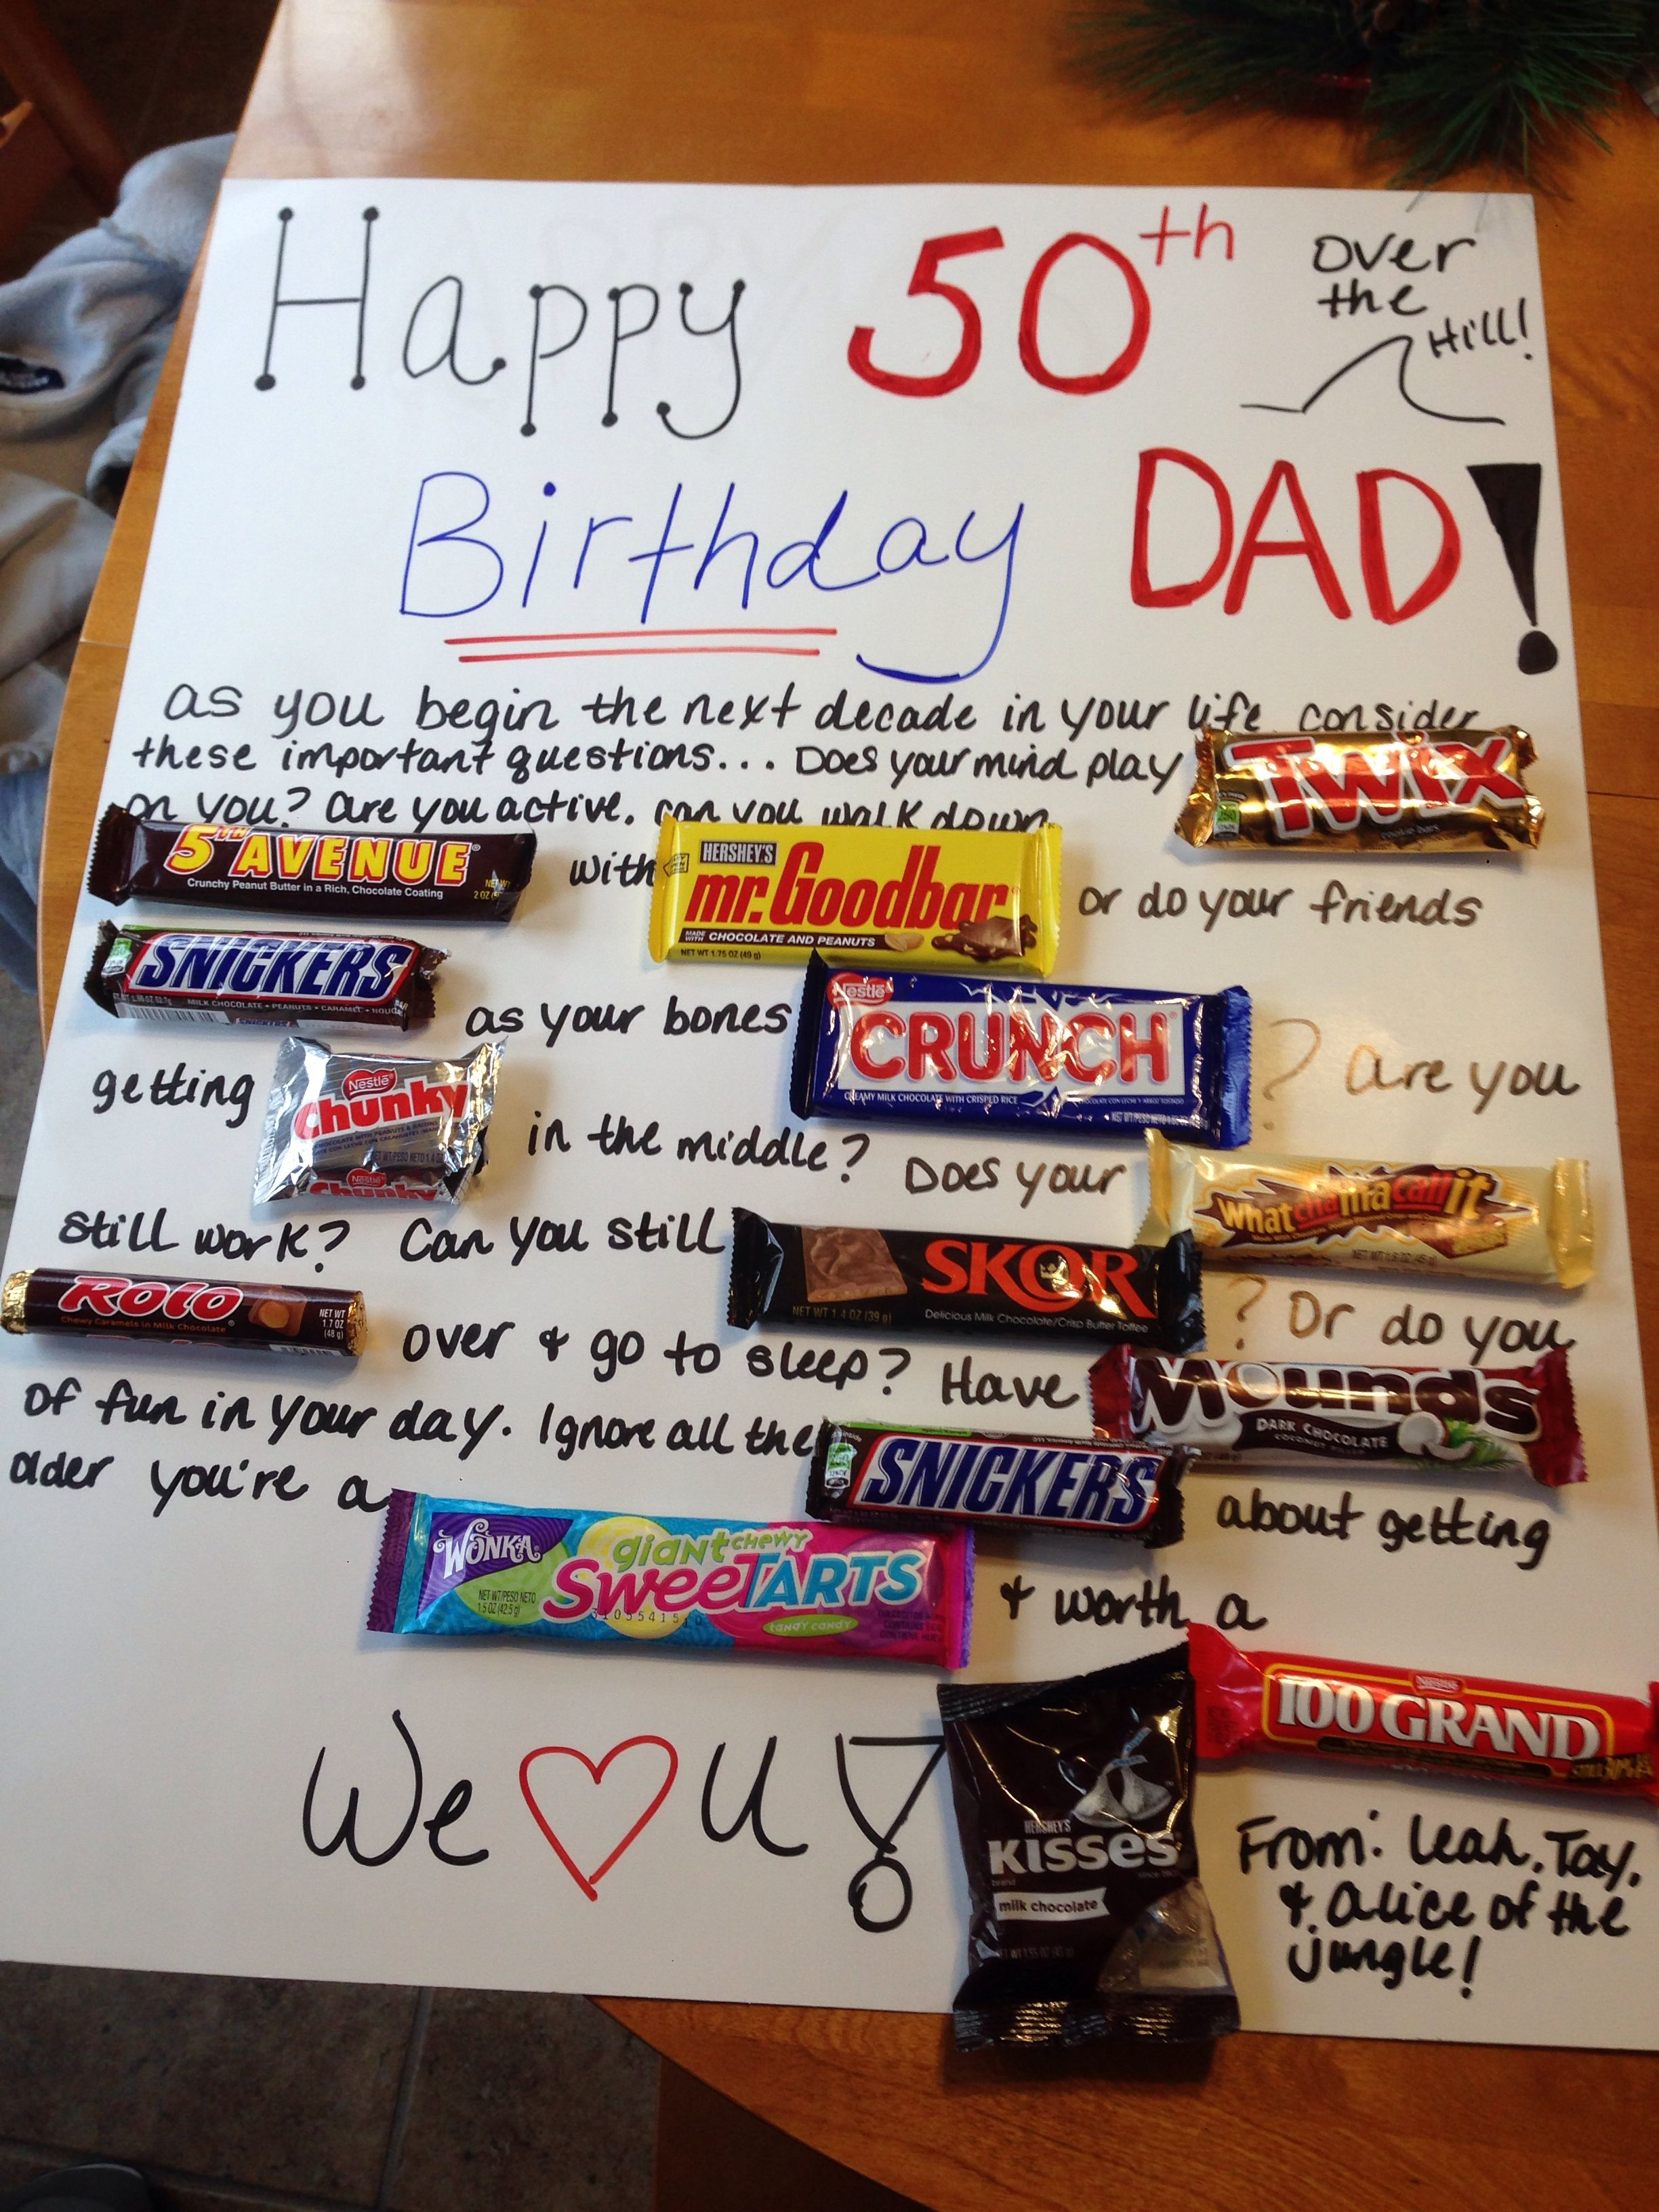 40th birthday ideas 50th birthday gift ideas for uncle for 50th birthday decoration ideas for men